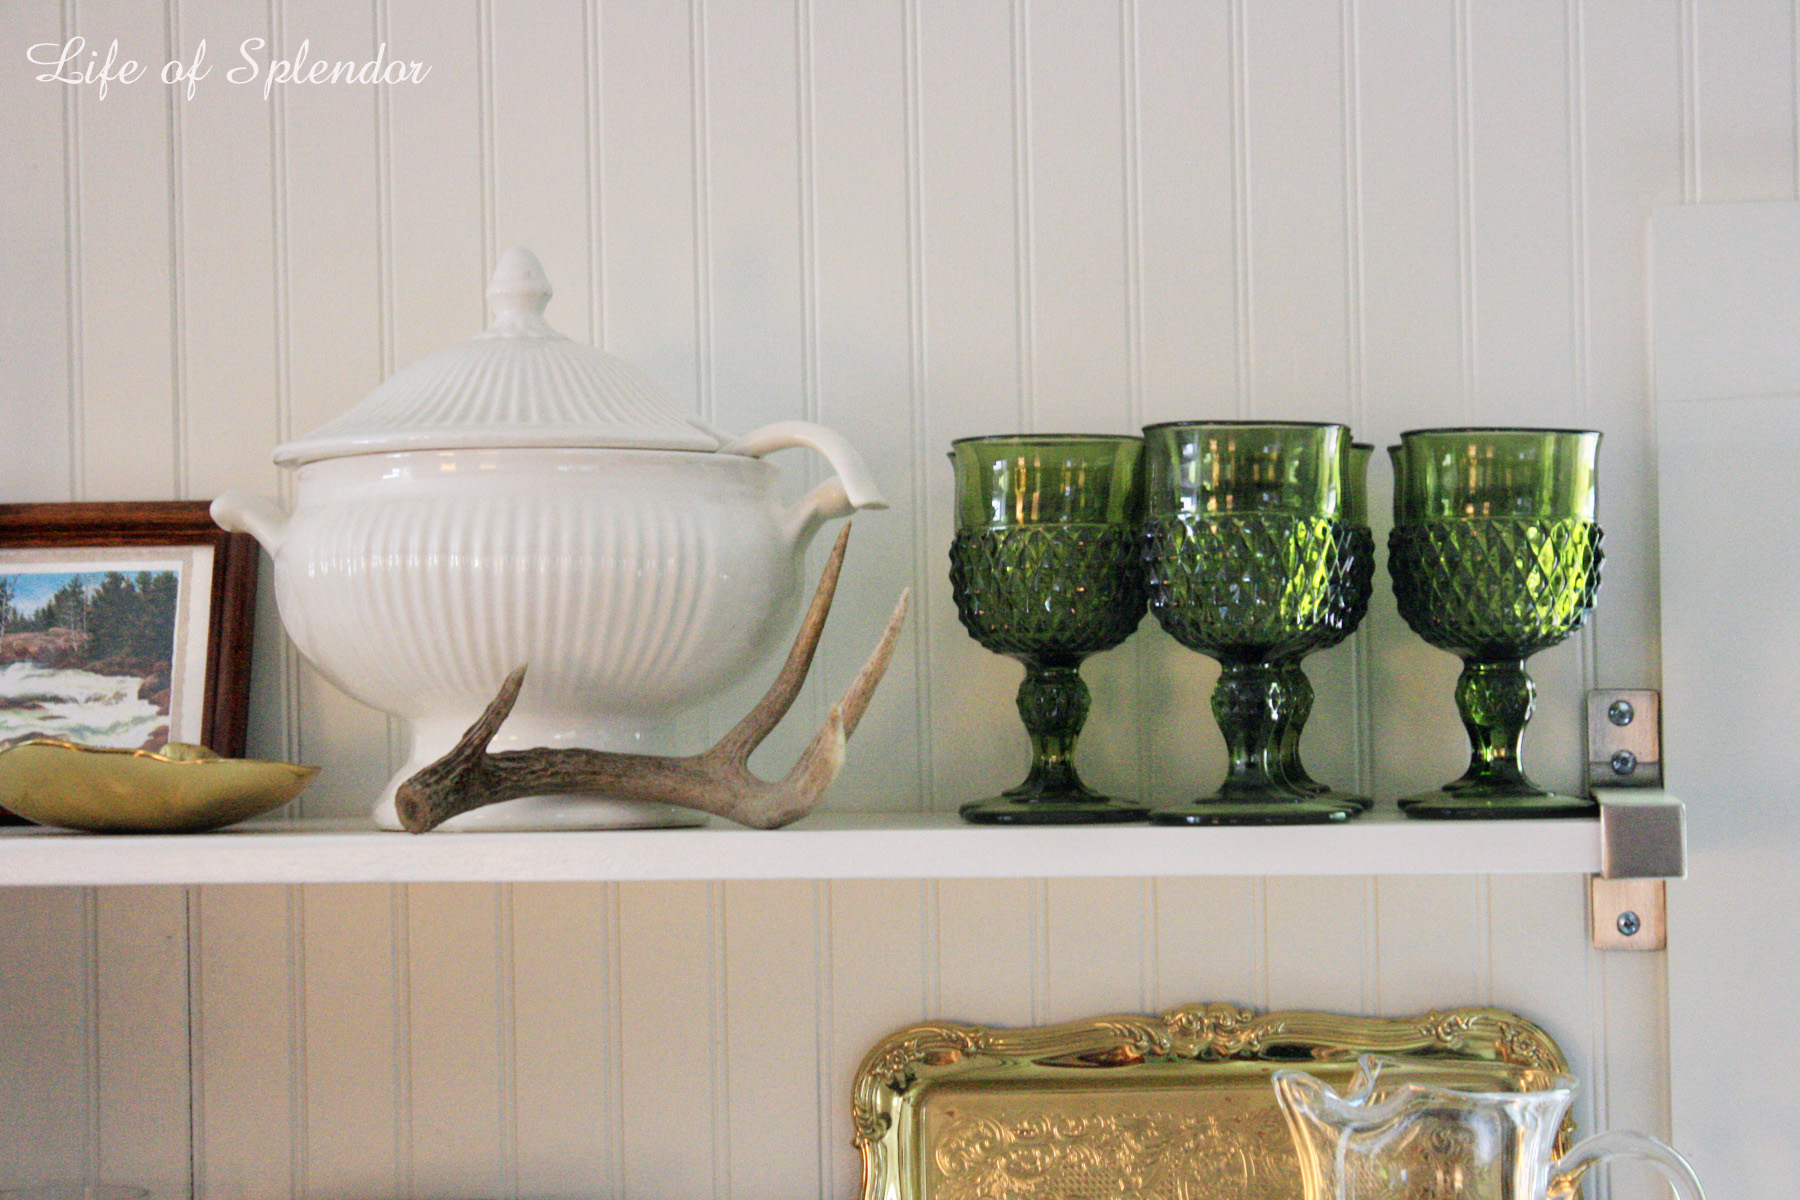 Life of Splendor Open Shelves Styling 2